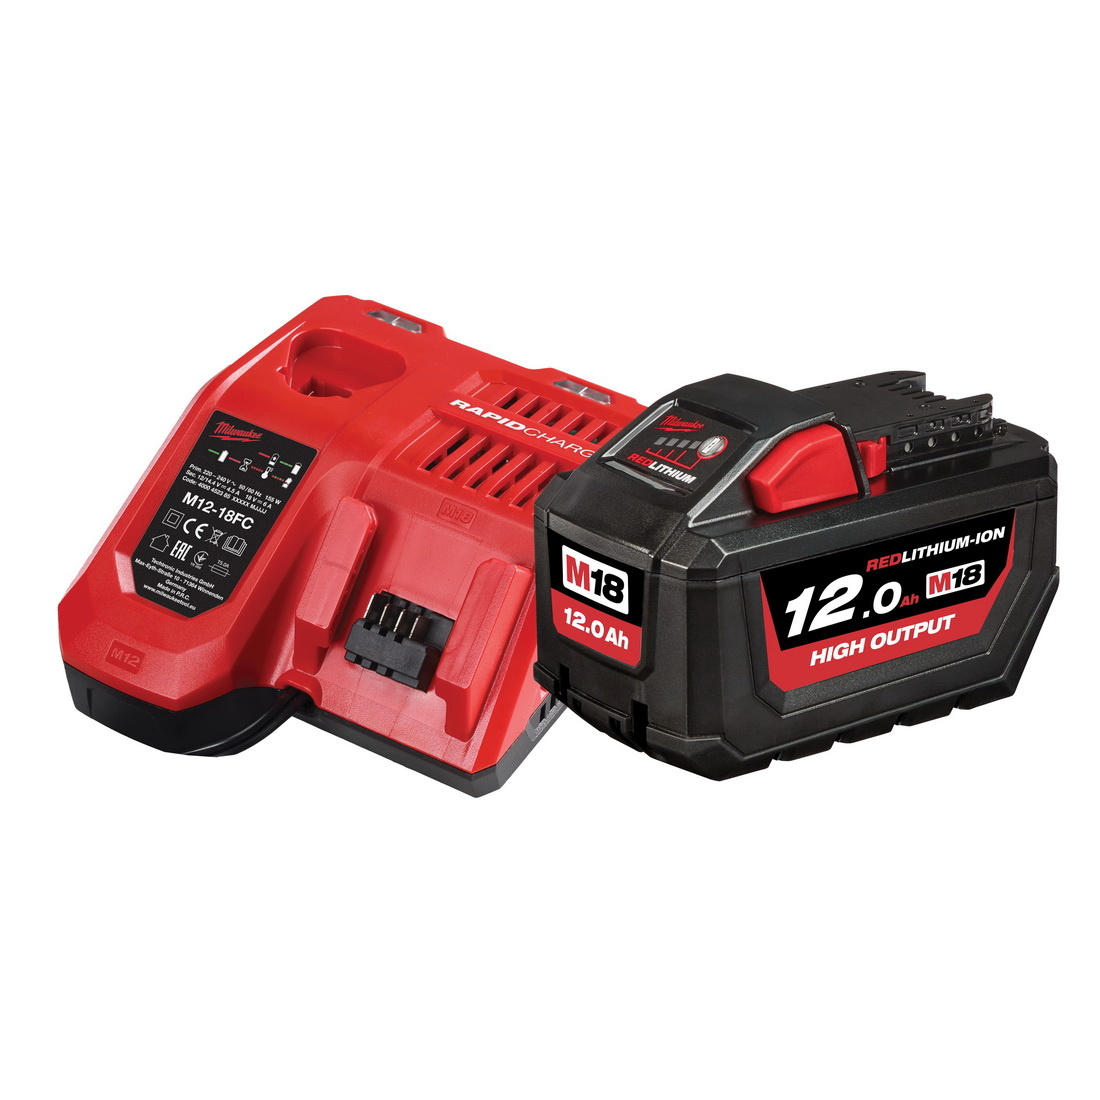 M18 REDLITHIUM-ION High Output Battery Starter Pack 12Ah